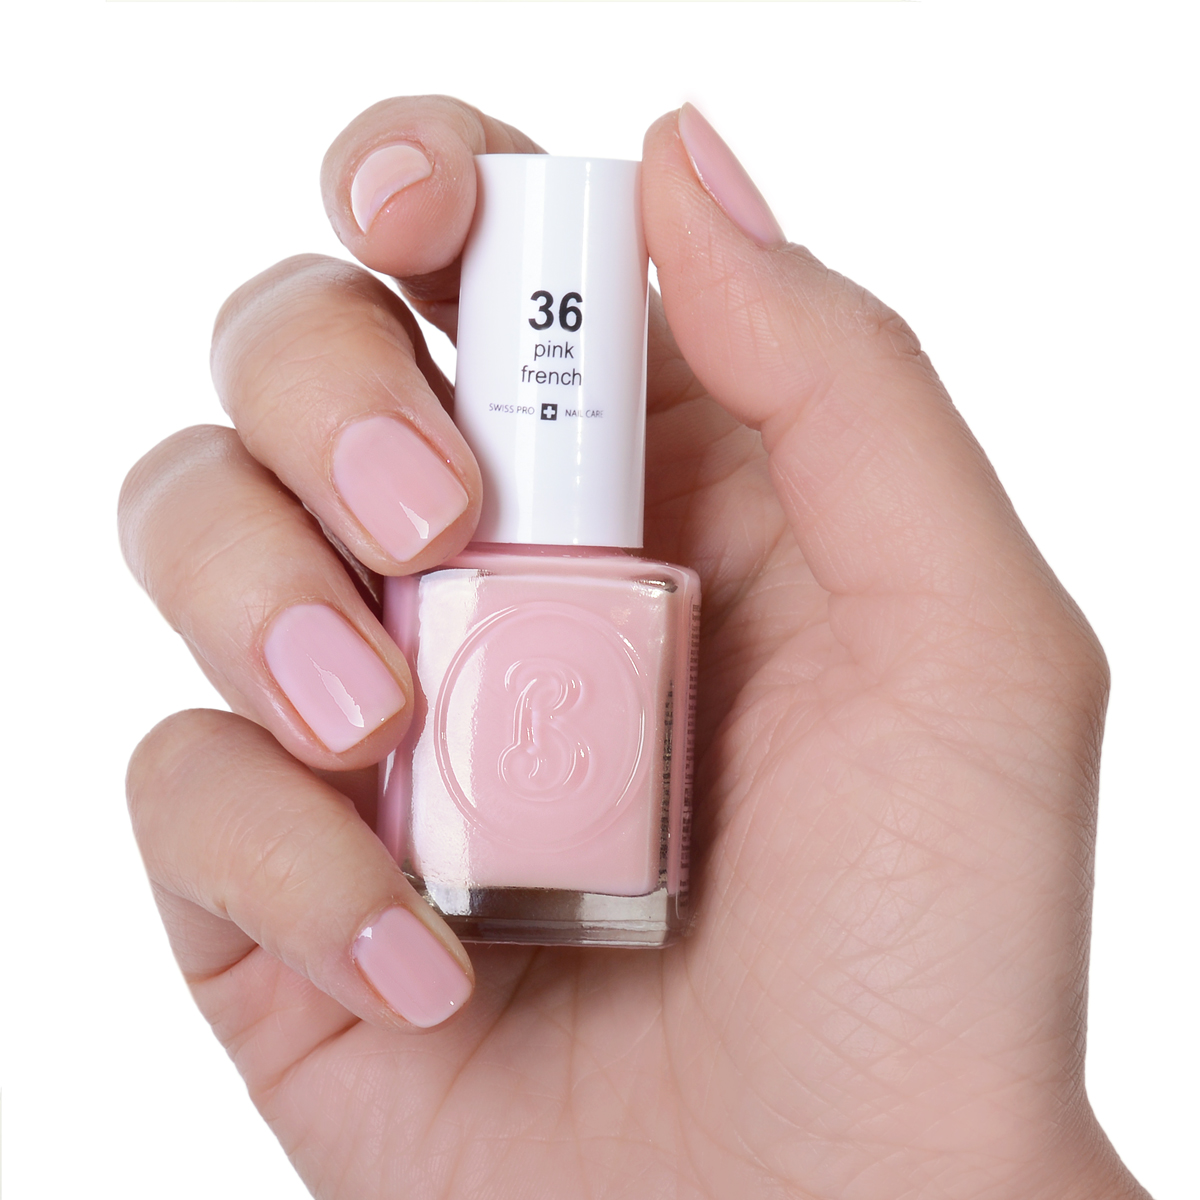 Berenice Oxygen Nail Polish / 36 pink french